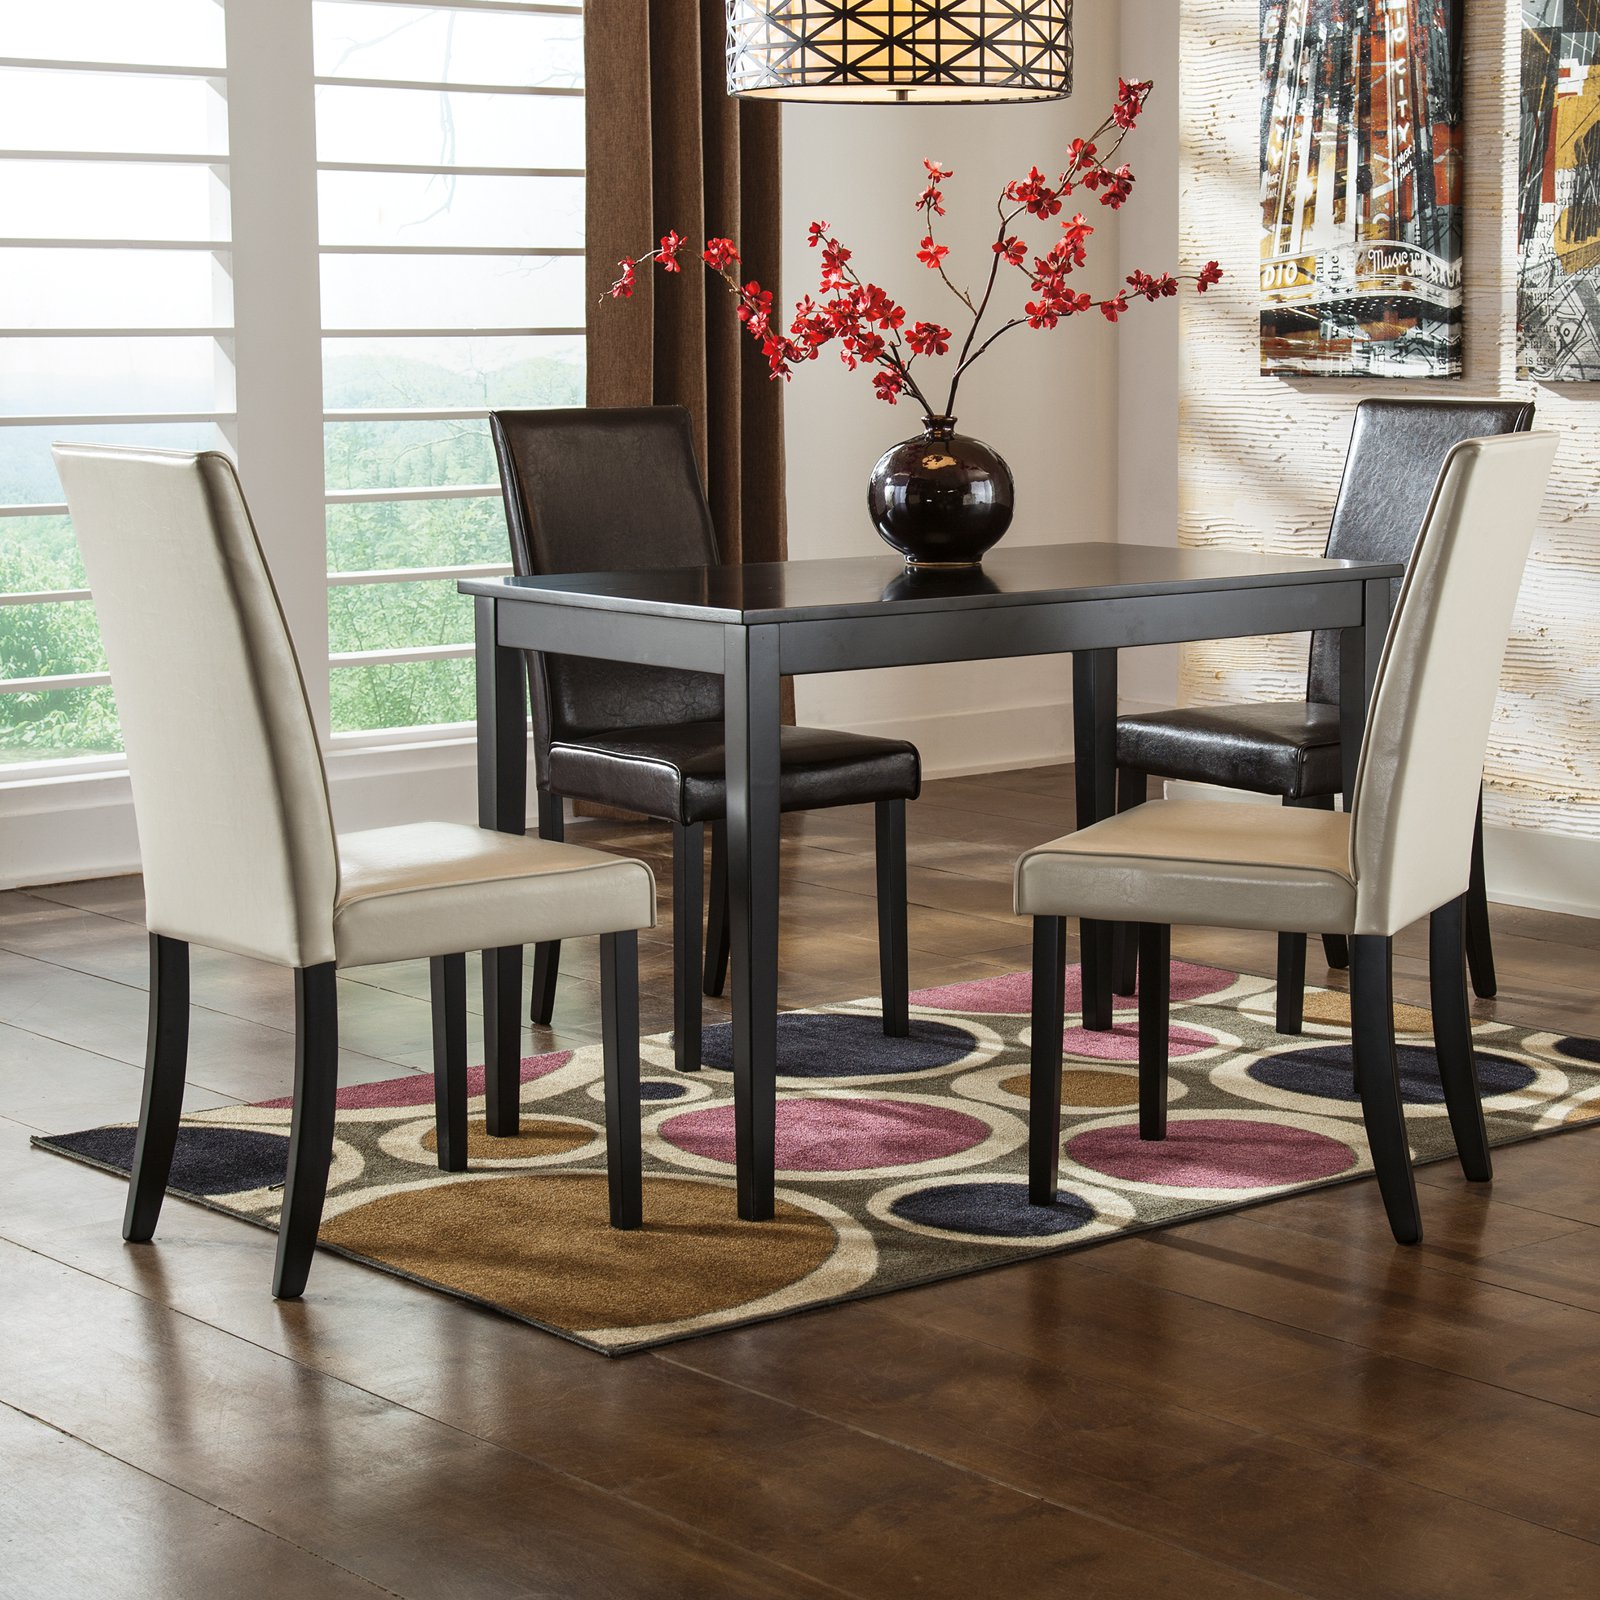 Signature Design by Ashley Kimonte Rectangular Dining Table